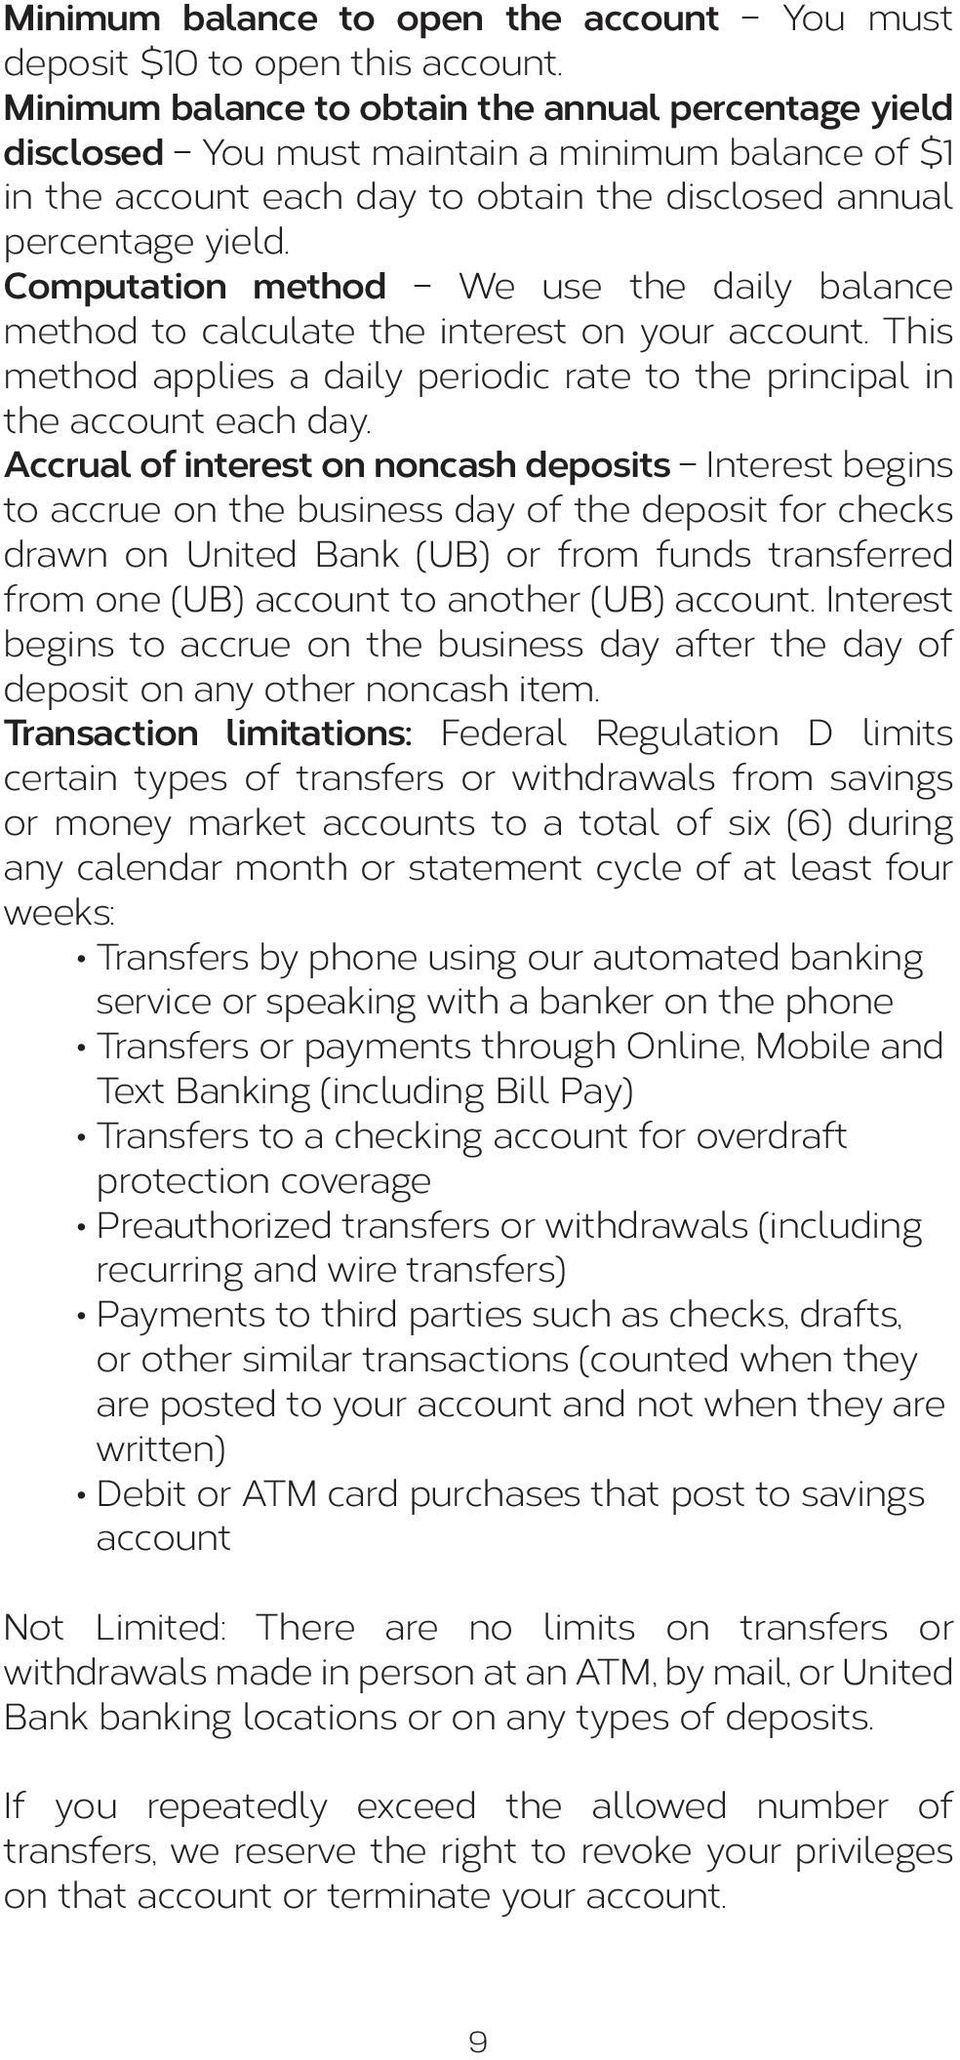 of at least four weeks: Transfers by phone using our automated banking service or speaking with a banker on the phone Transfers or payments through Online, Mobile and Text Banking (including Bill